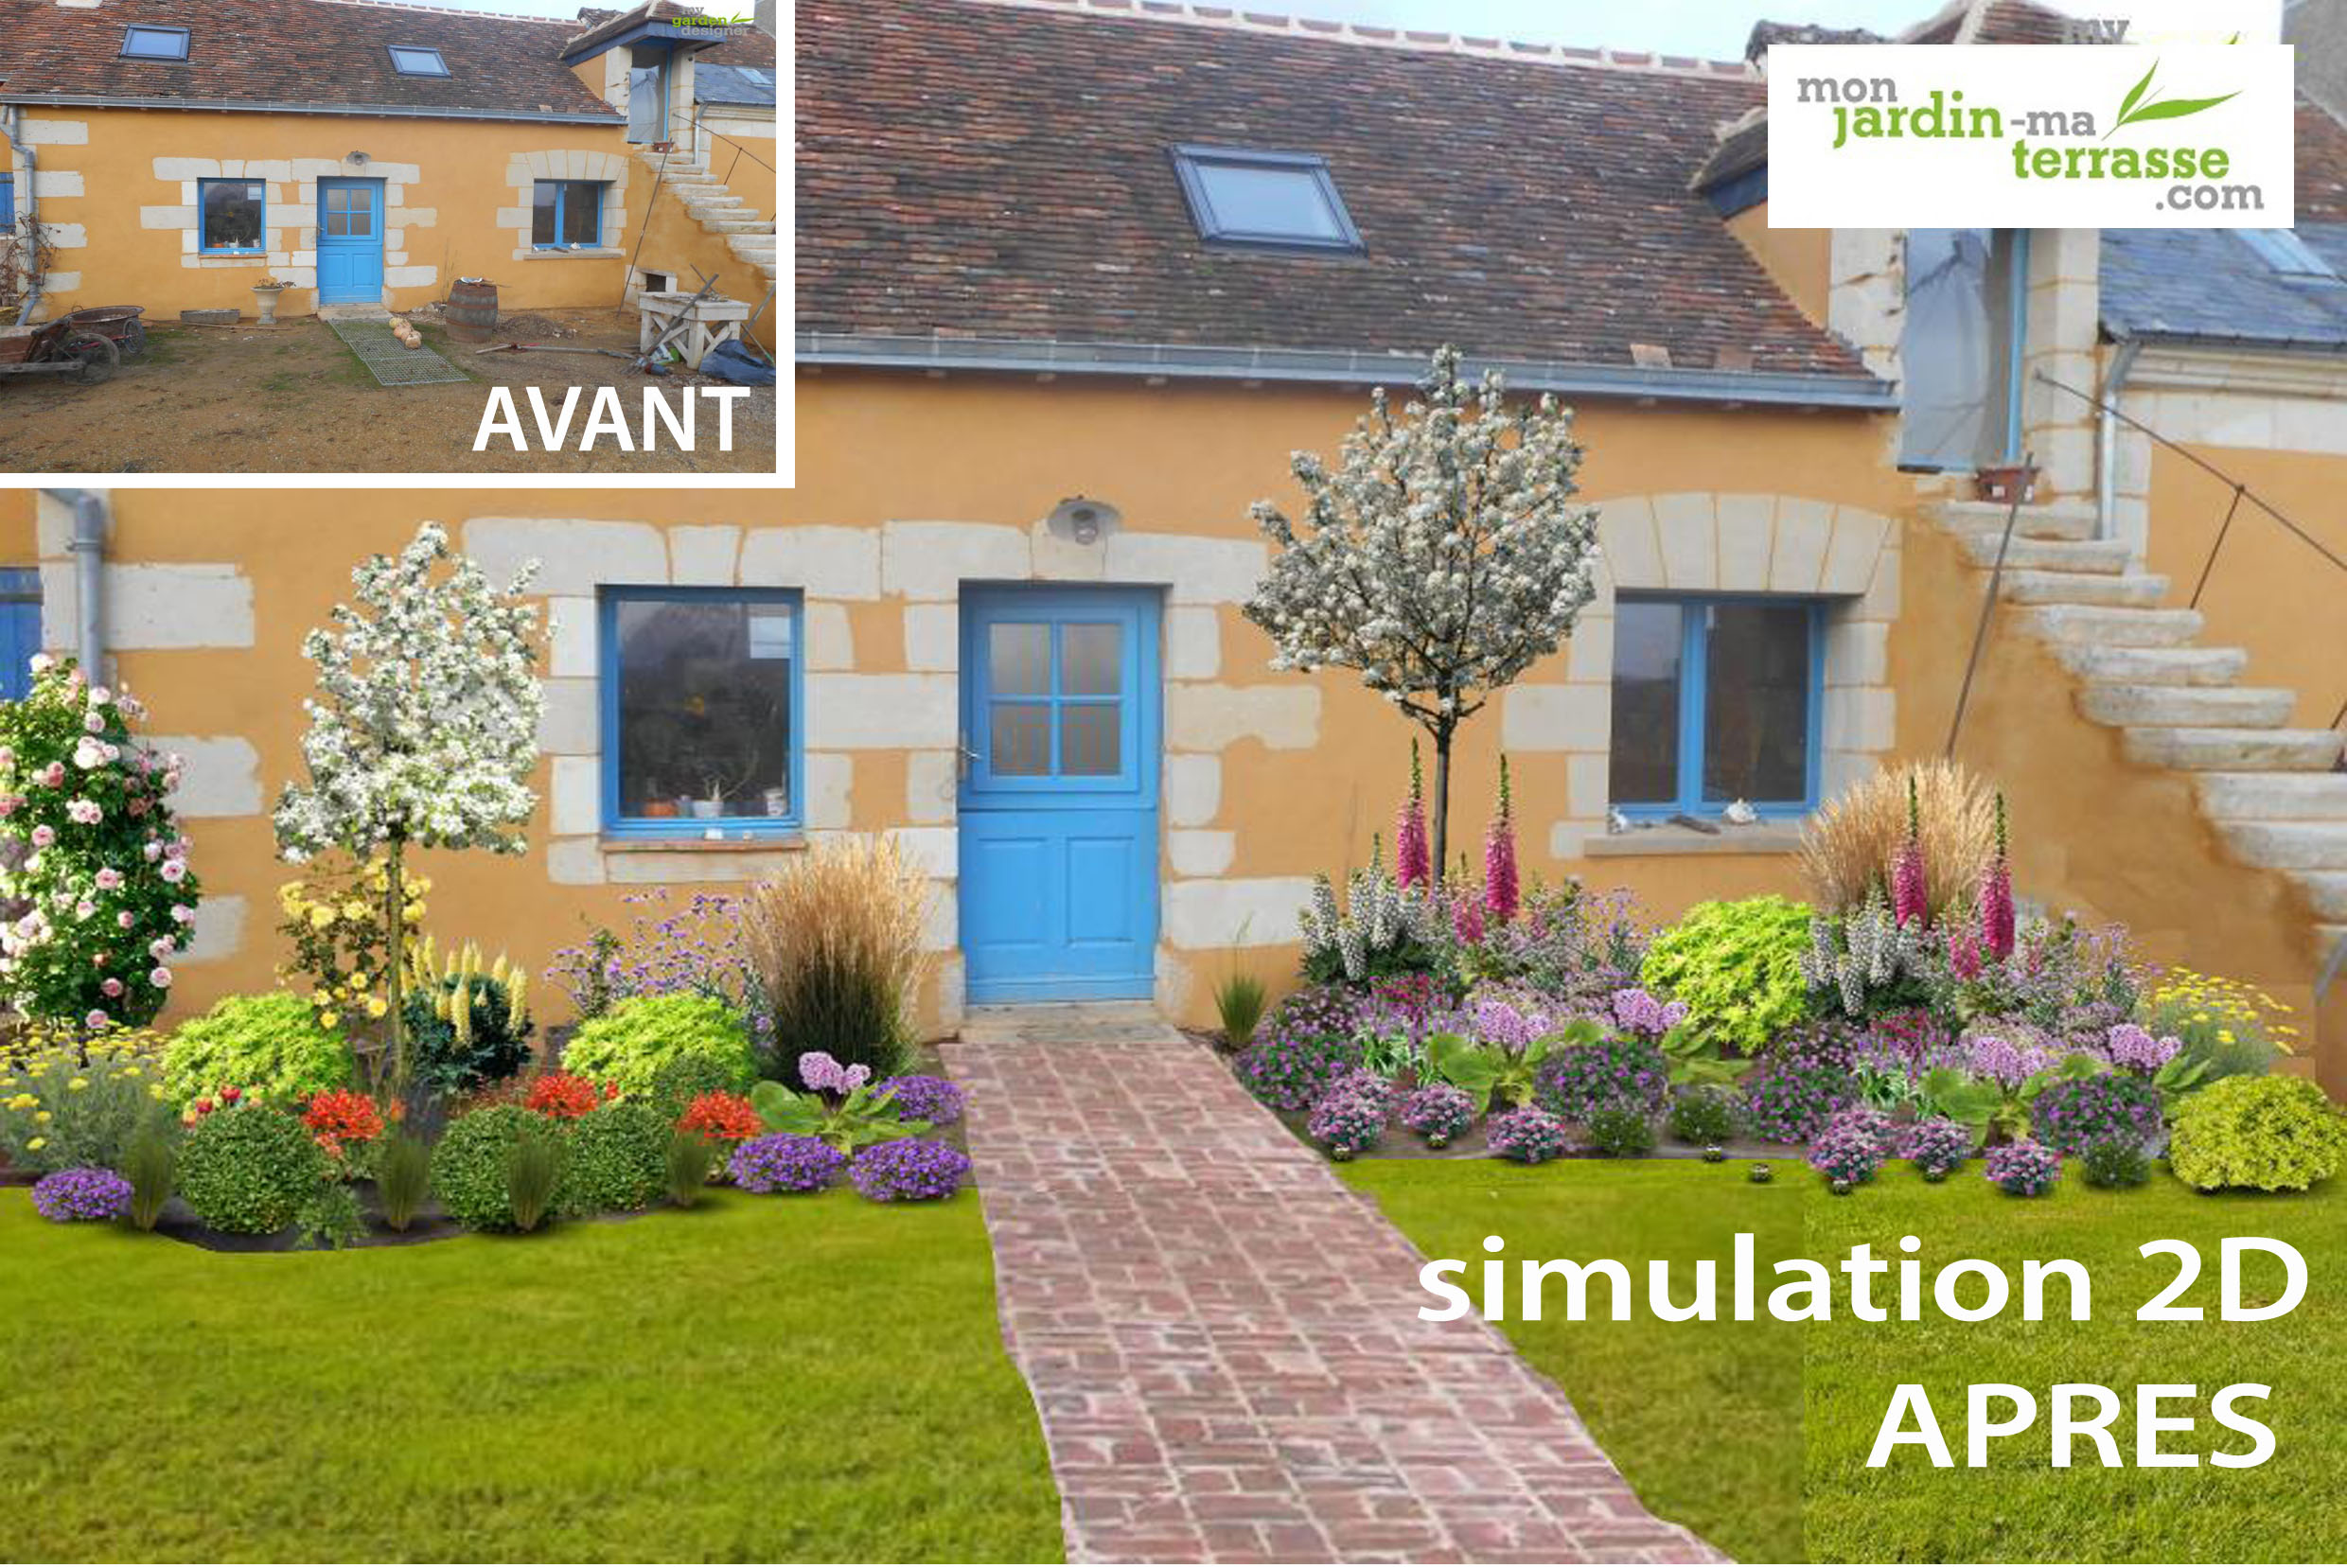 Am nager un jardin style cottage anglais monjardin for Amenager le jardin